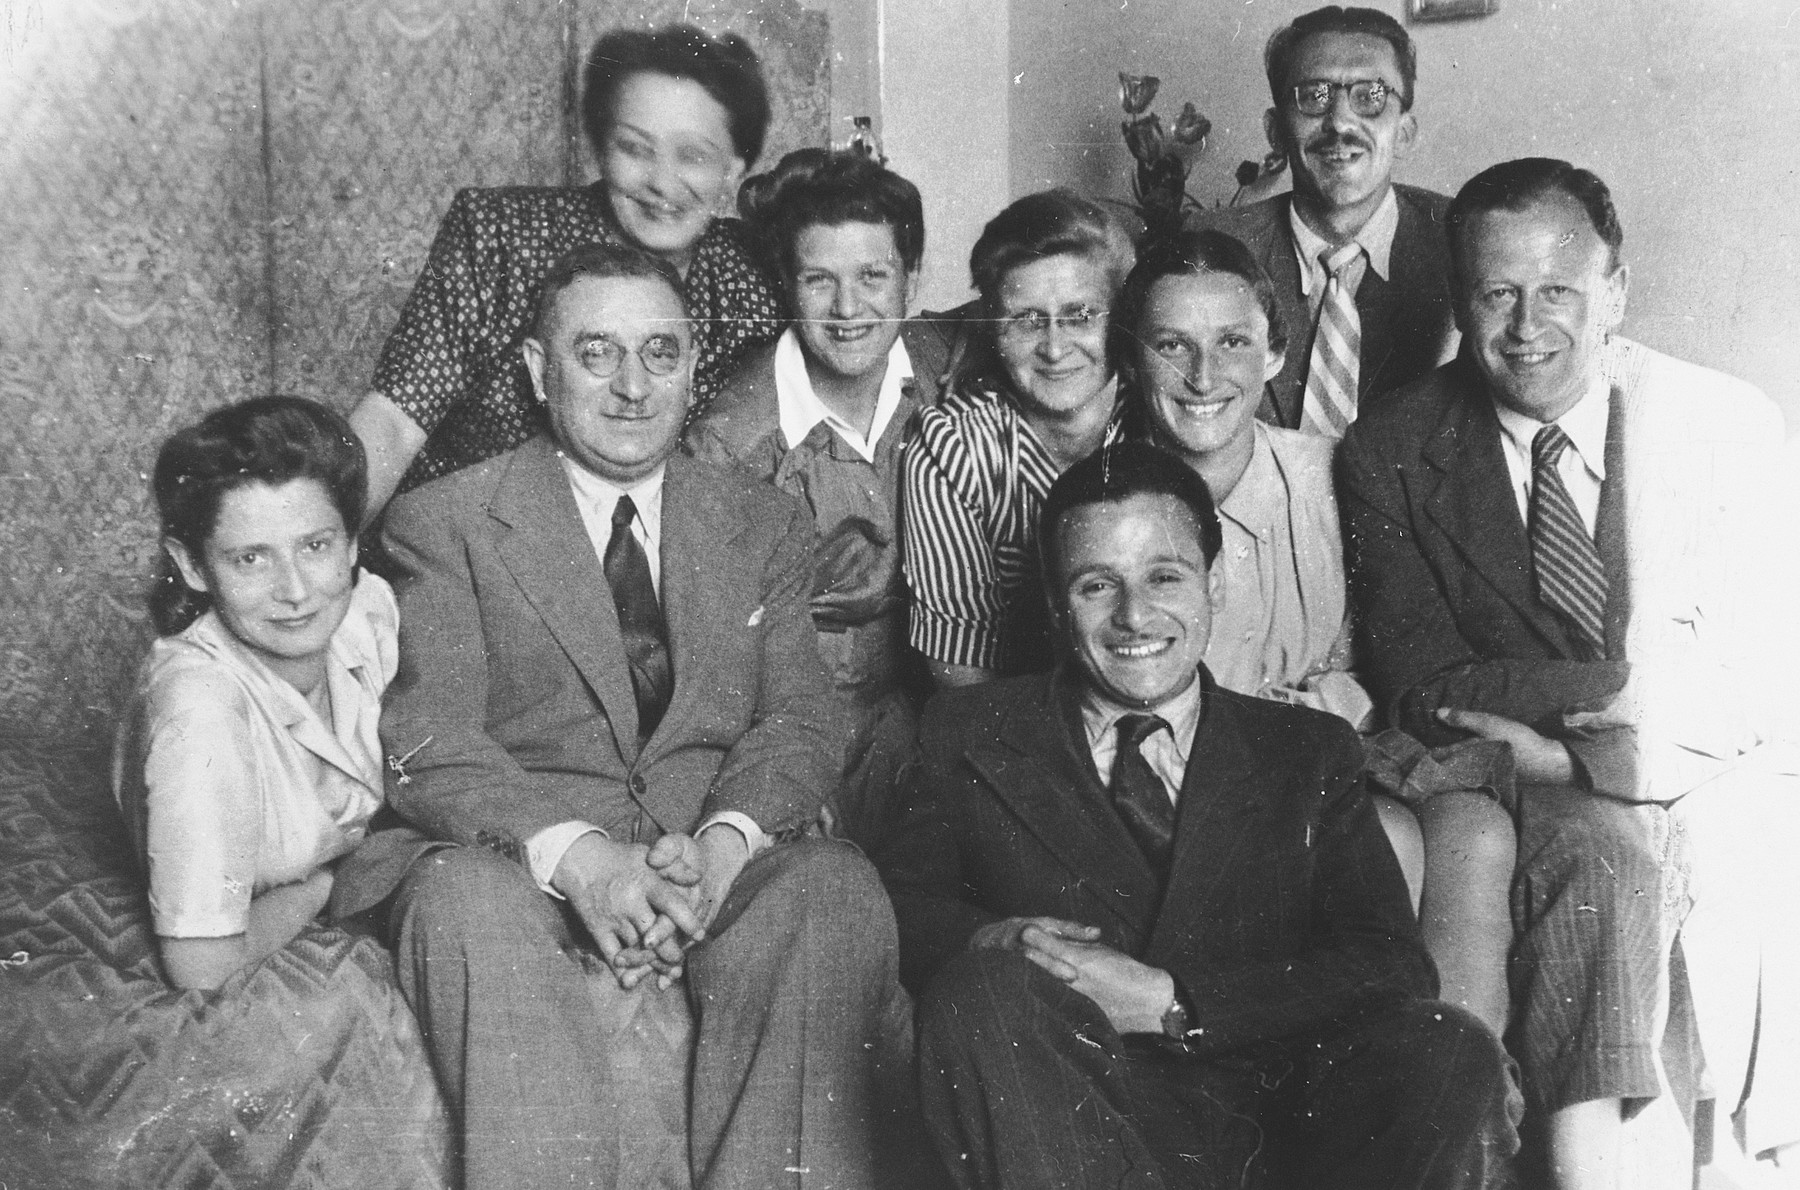 Group portrait of friends and relatives gathered in an apartment in Vilna.  Among those pictured are Dr. Elias Sedlis (front row, second from left), Alexander Sedlis (front row center), Dr. Abraham Wajnryb (far right) and Maryla Abramowicz.  Maryla Abramowicz was later recognized by Yad Vashem as Righteous Among the Nations.